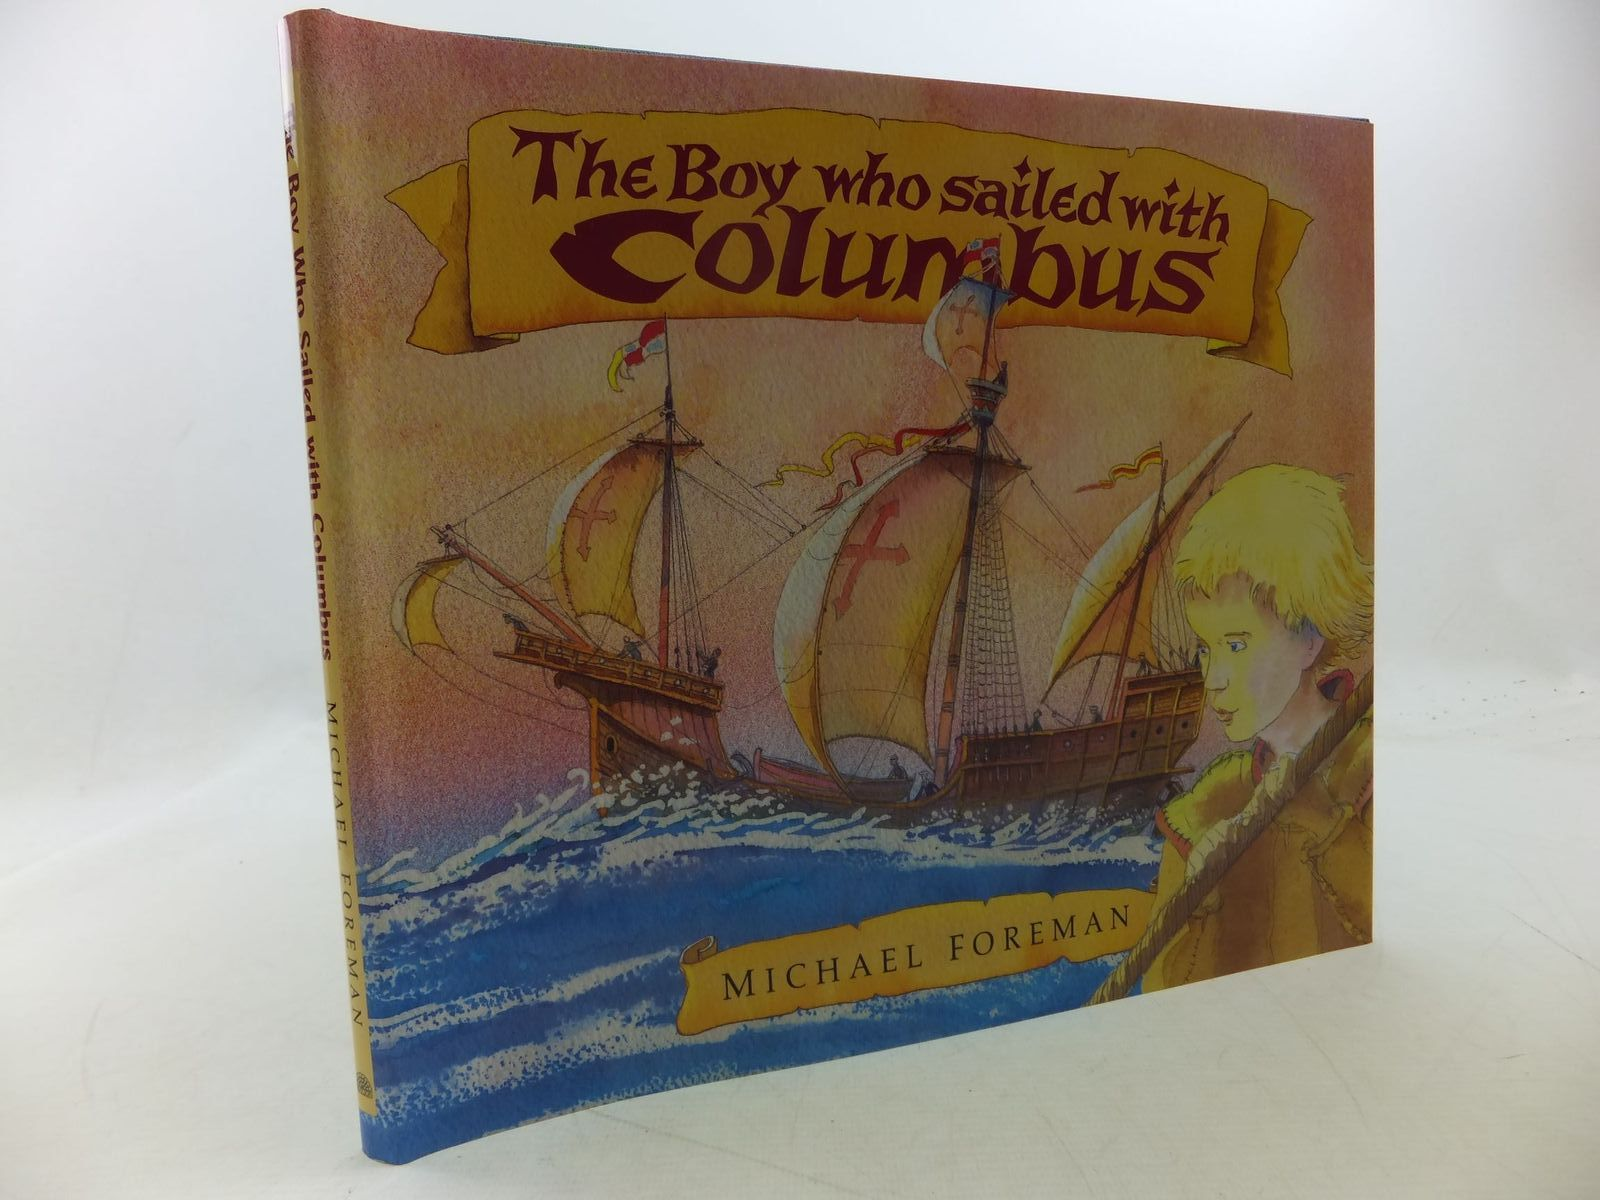 Photo of THE BOY WHO SAILED WITH COLUMBUS written by Foreman, Michael illustrated by Foreman, Michael published by Pavilion Books Ltd. (STOCK CODE: 1710147)  for sale by Stella & Rose's Books